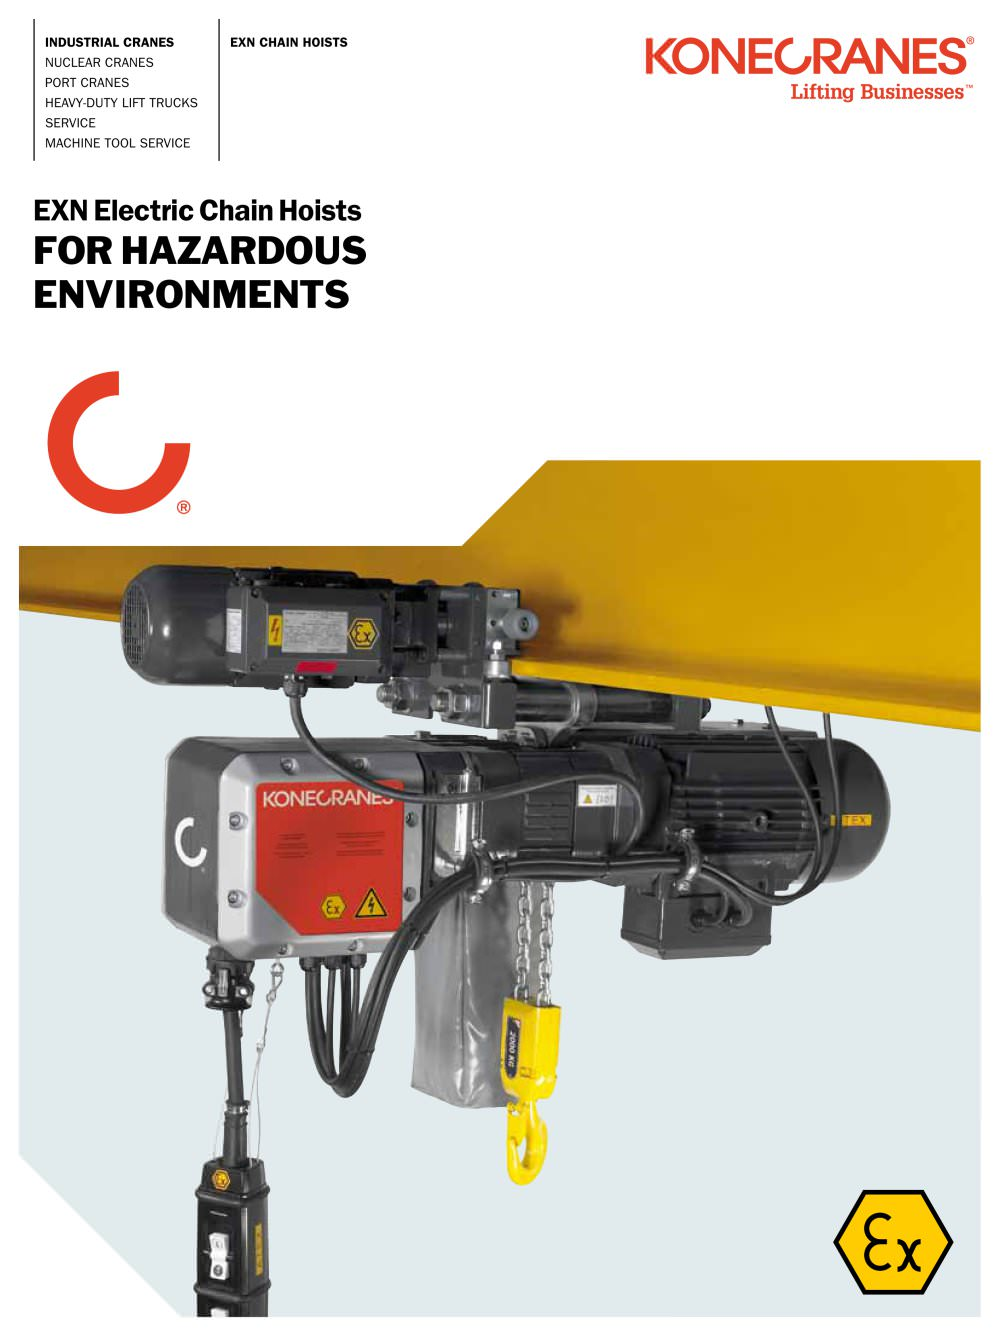 EXN Electric Chain Hoists for Hazardous Environments - 1 / 4 Pages